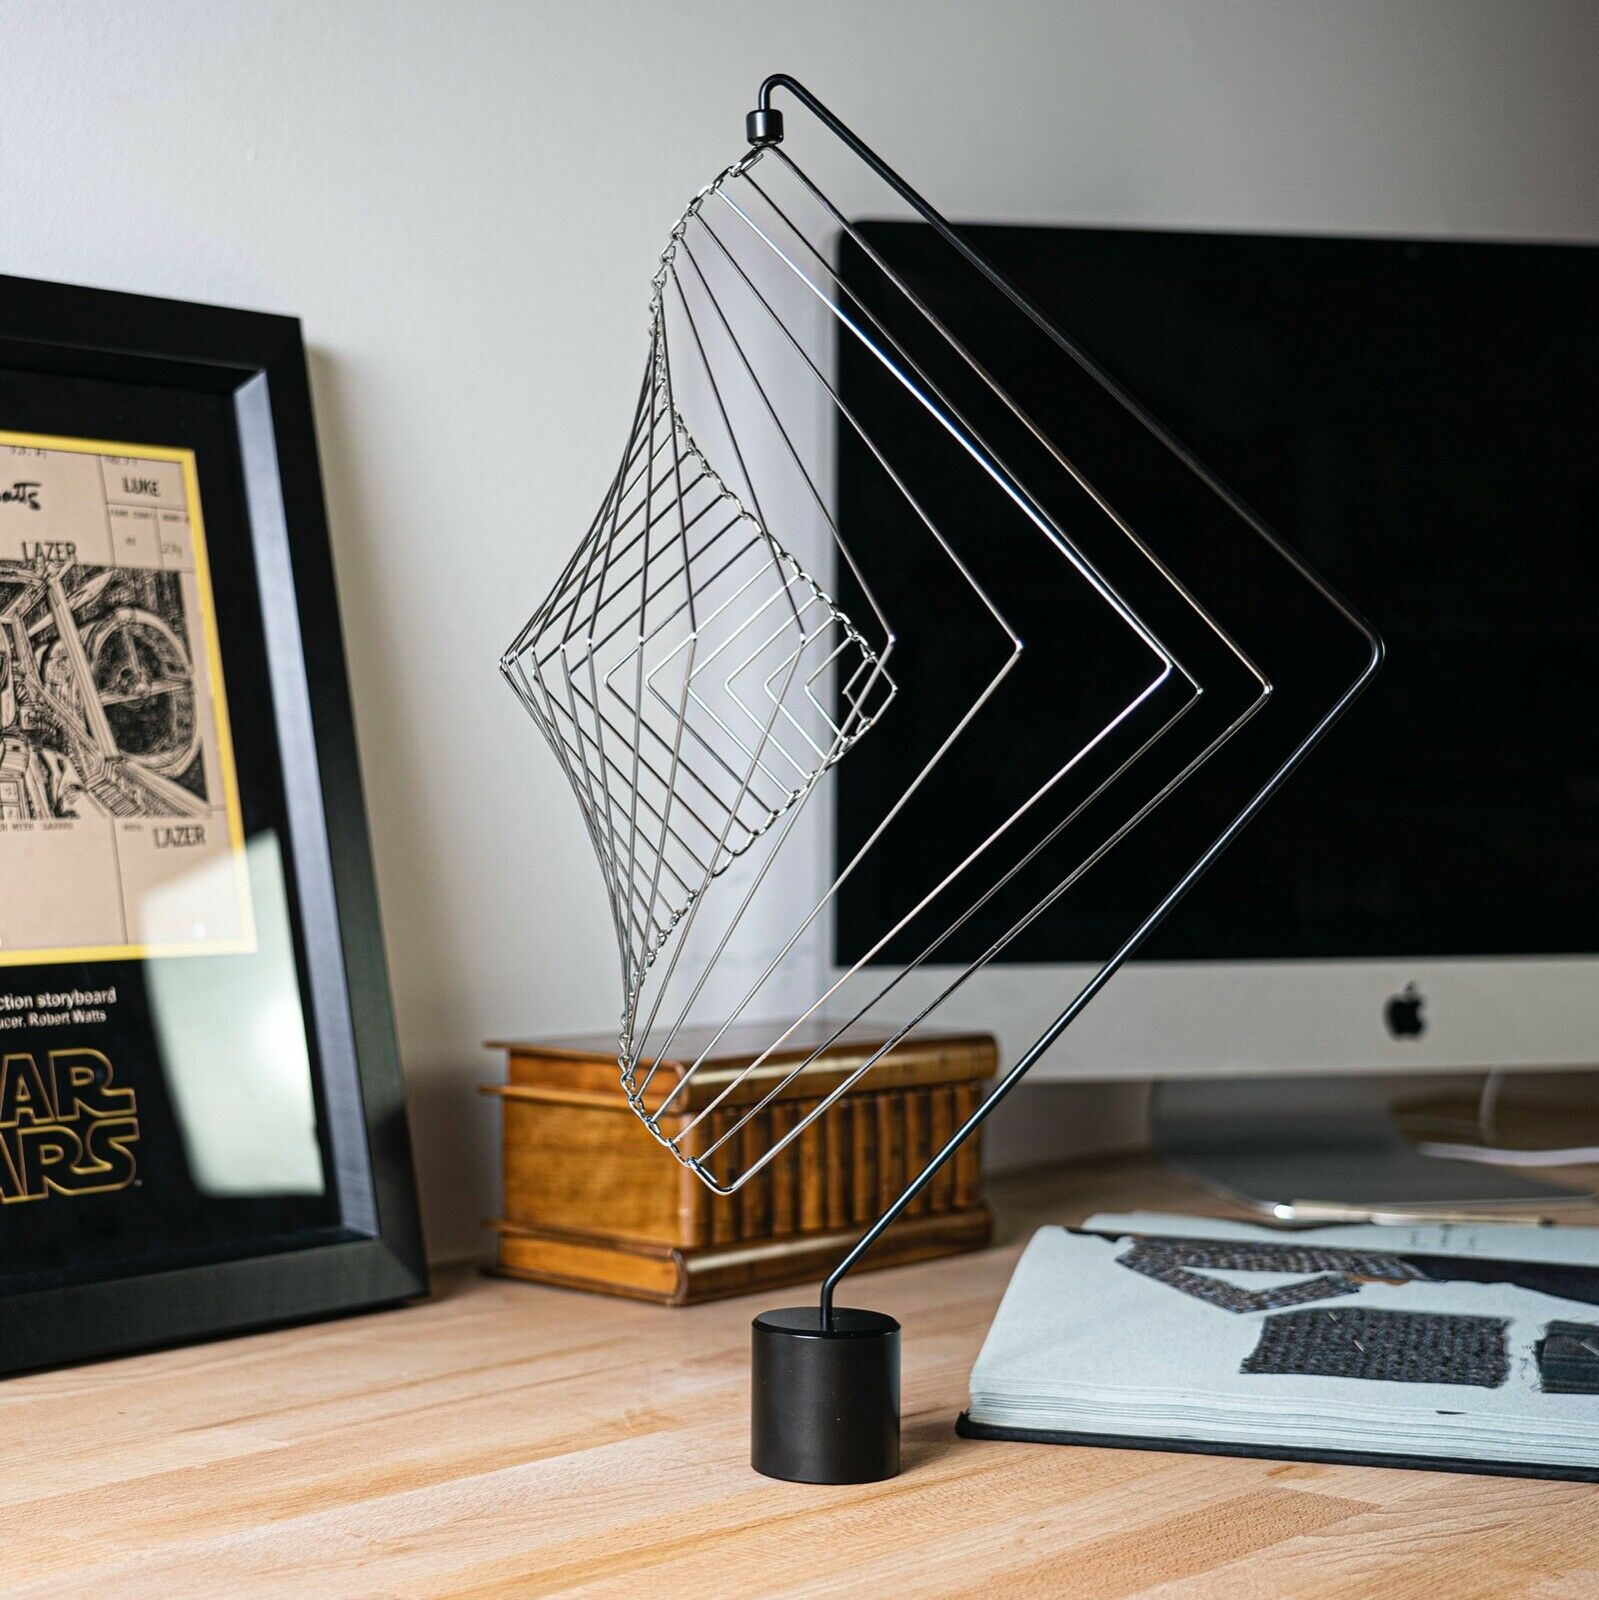 New Magnetic Stand with a Square Wave Metallic Silver by Ivan Black